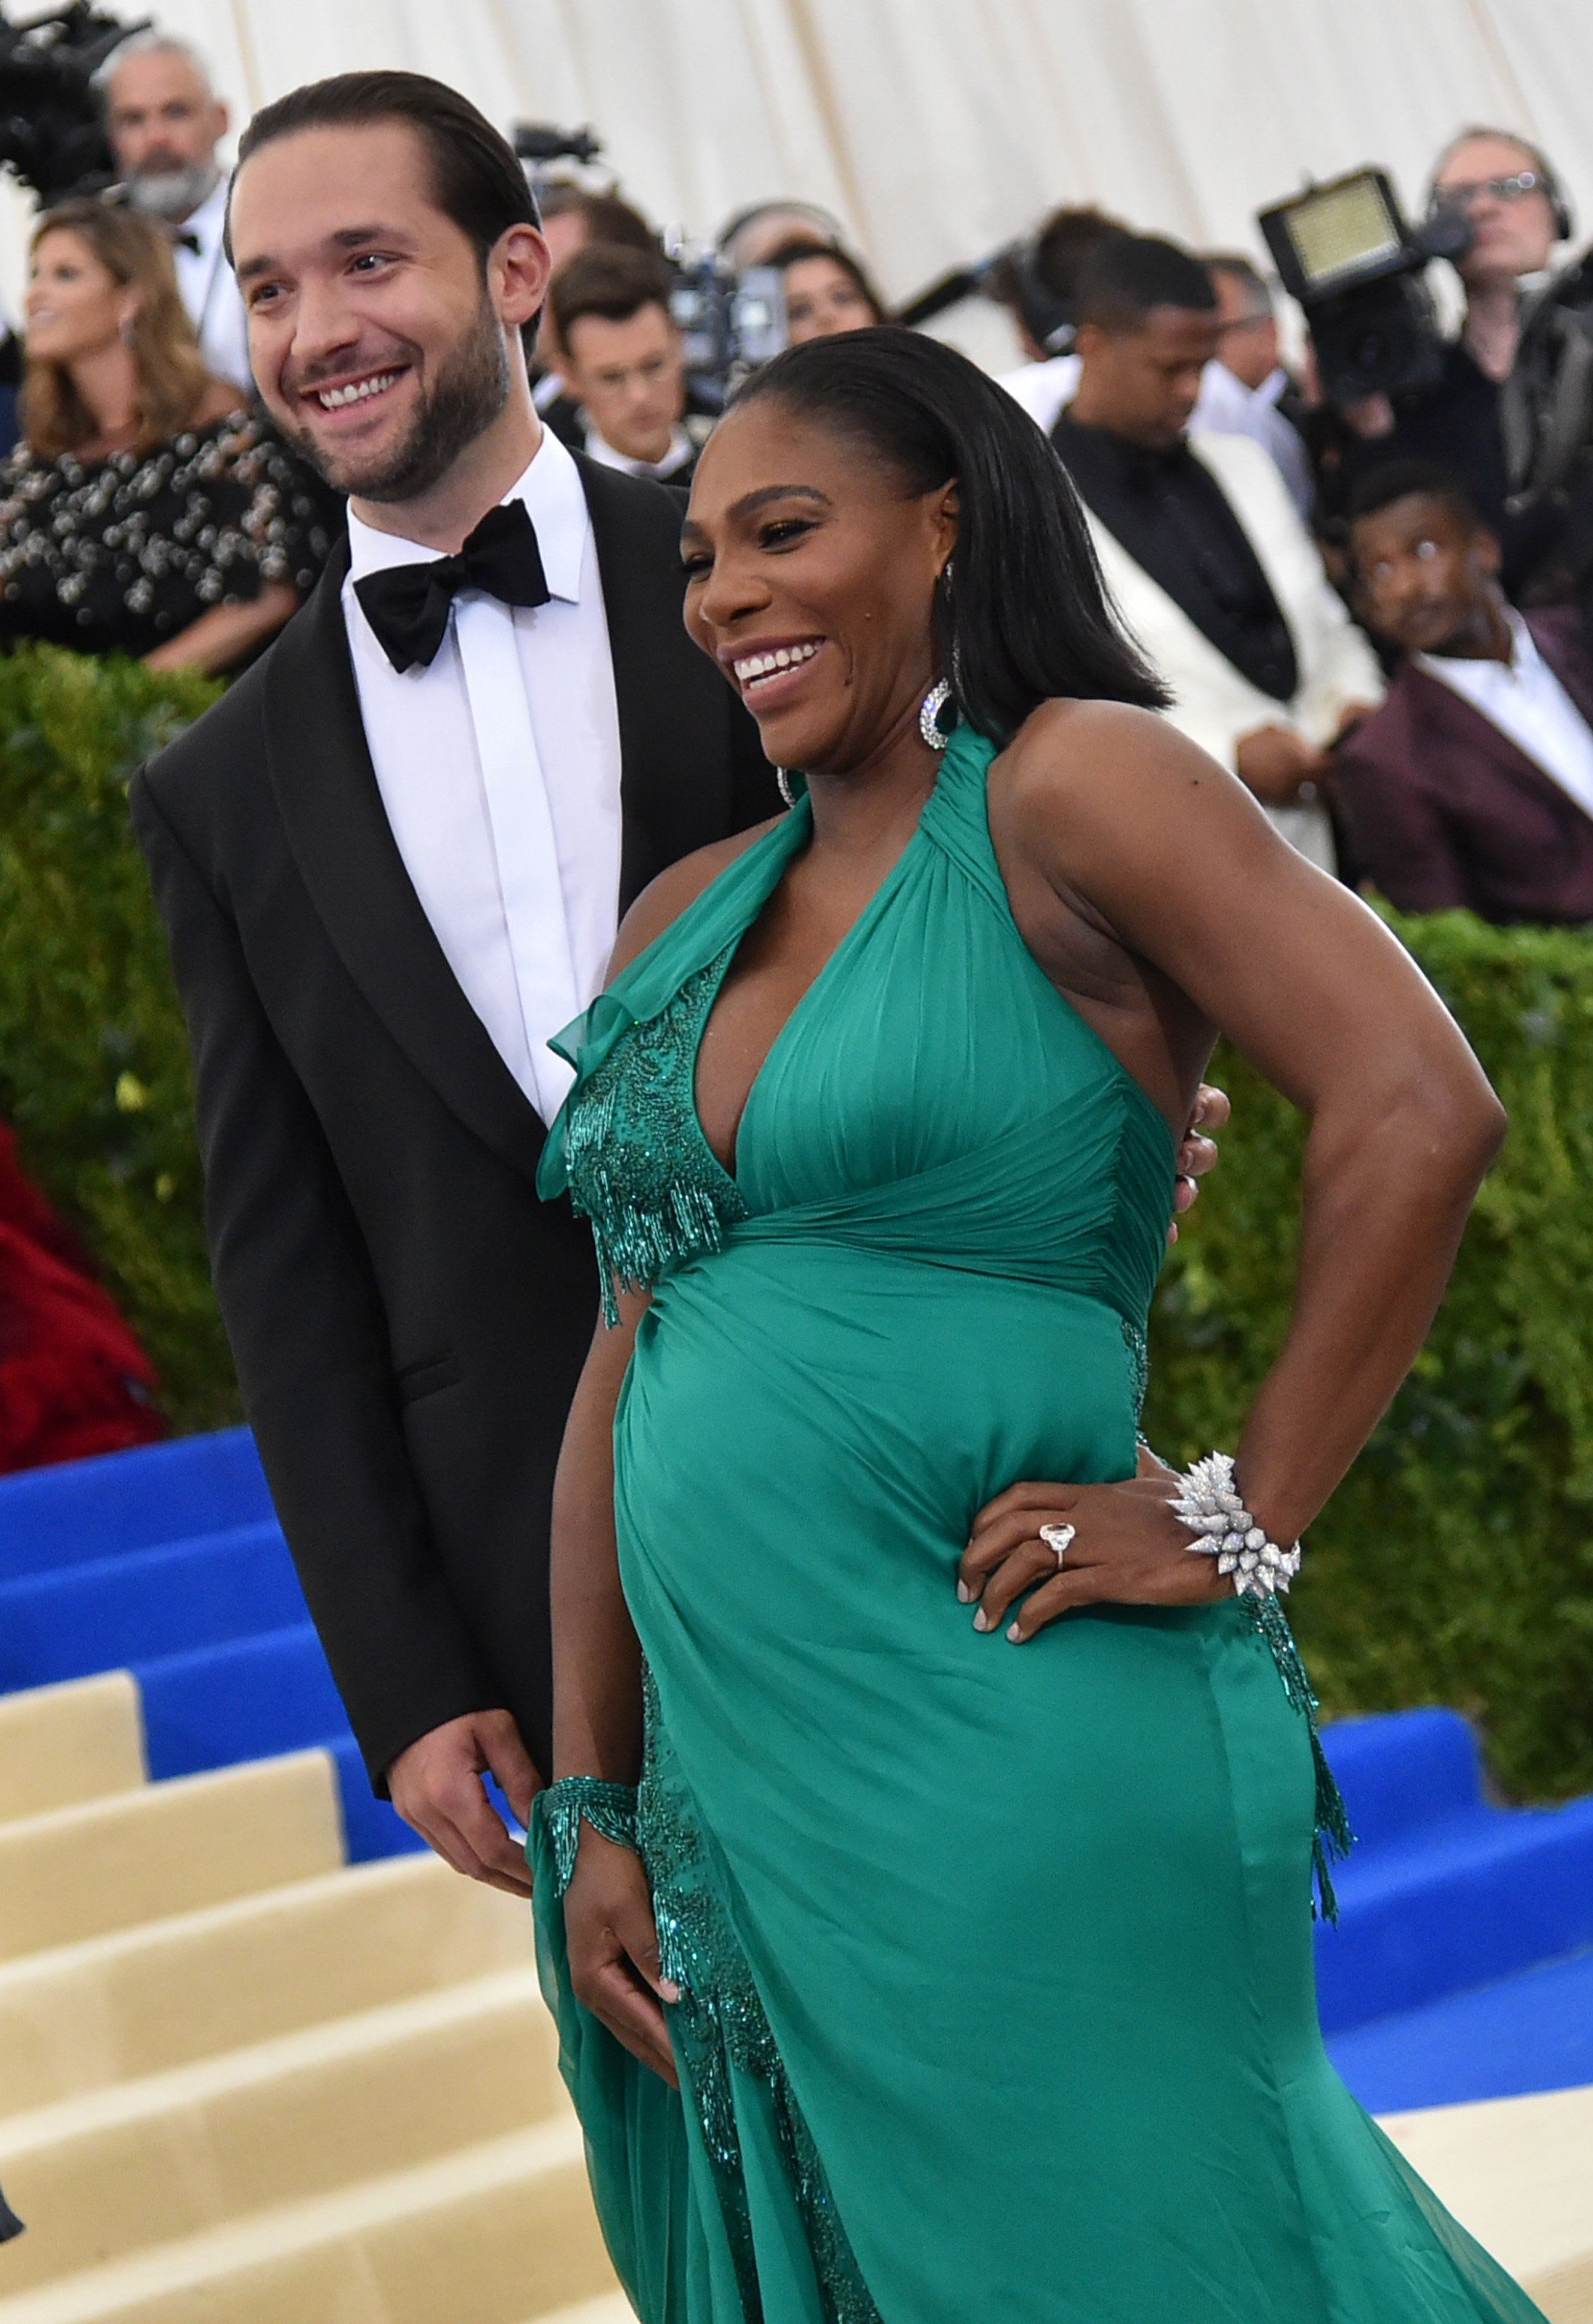 Serena Williams' Fiancé Is A Little Shocked By Her Pregnancy